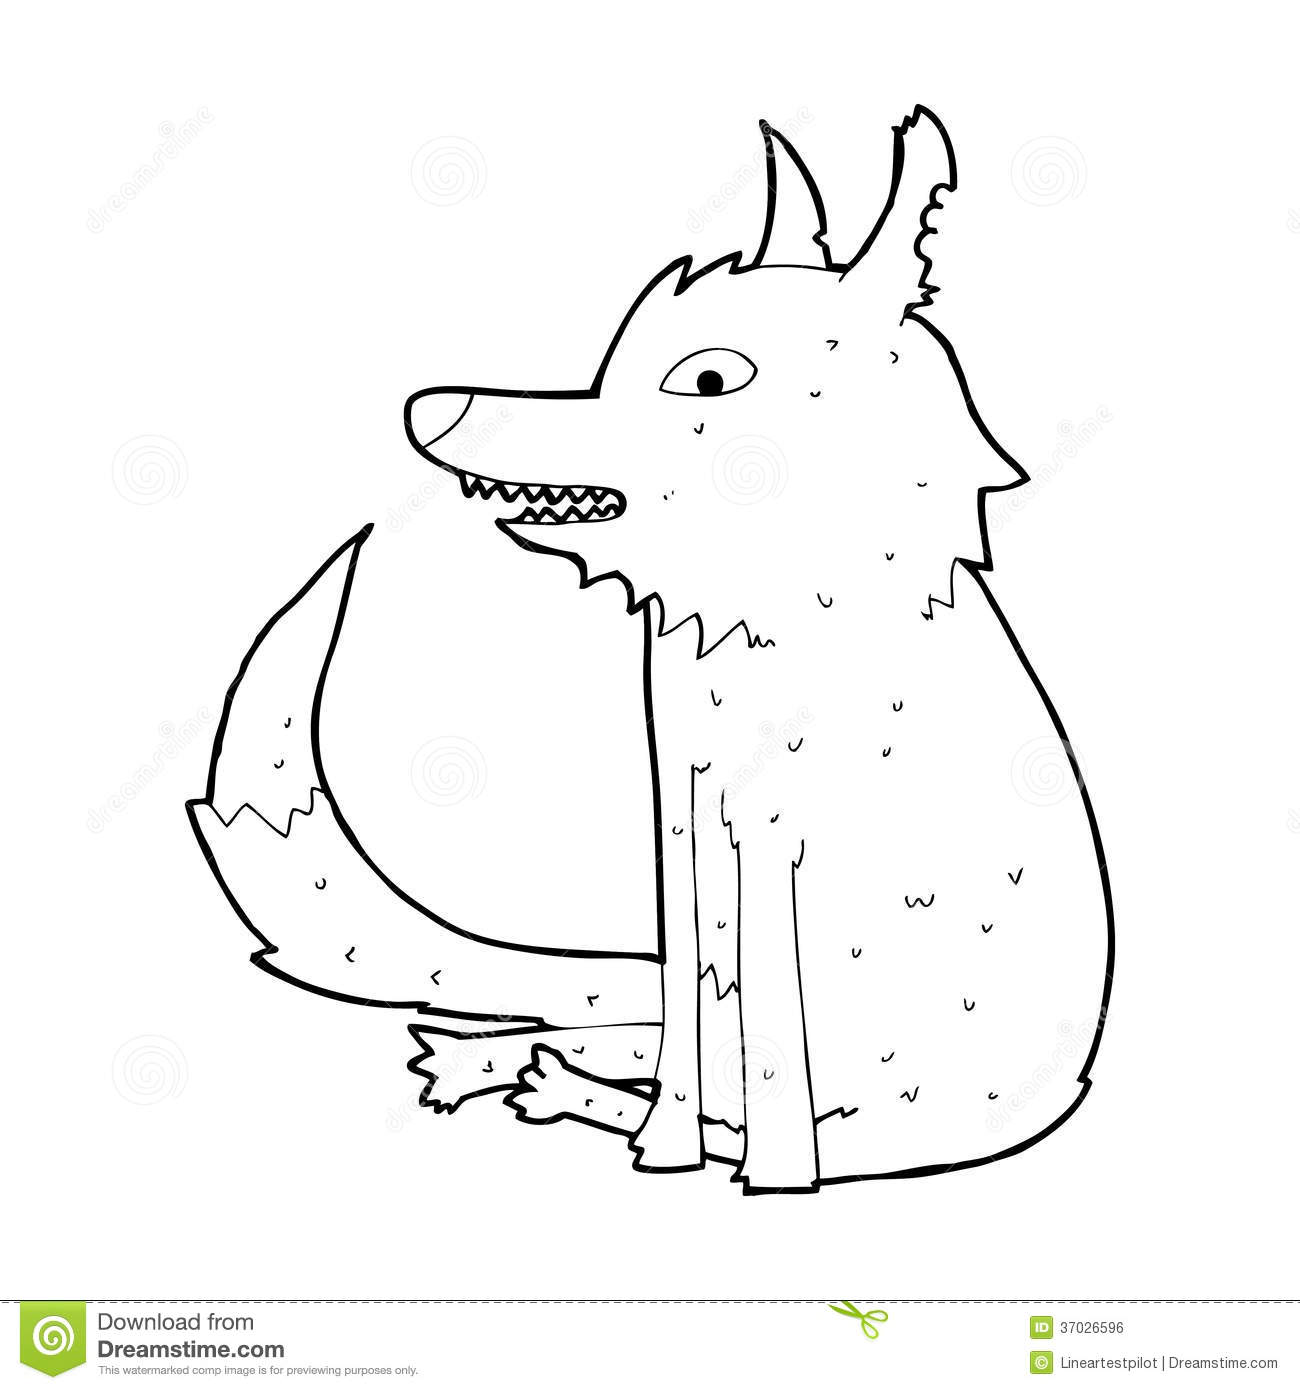 Cartoon wolf sitting stock illustration image of animals 37026596 royalty free stock photo download cartoon wolf ccuart Choice Image